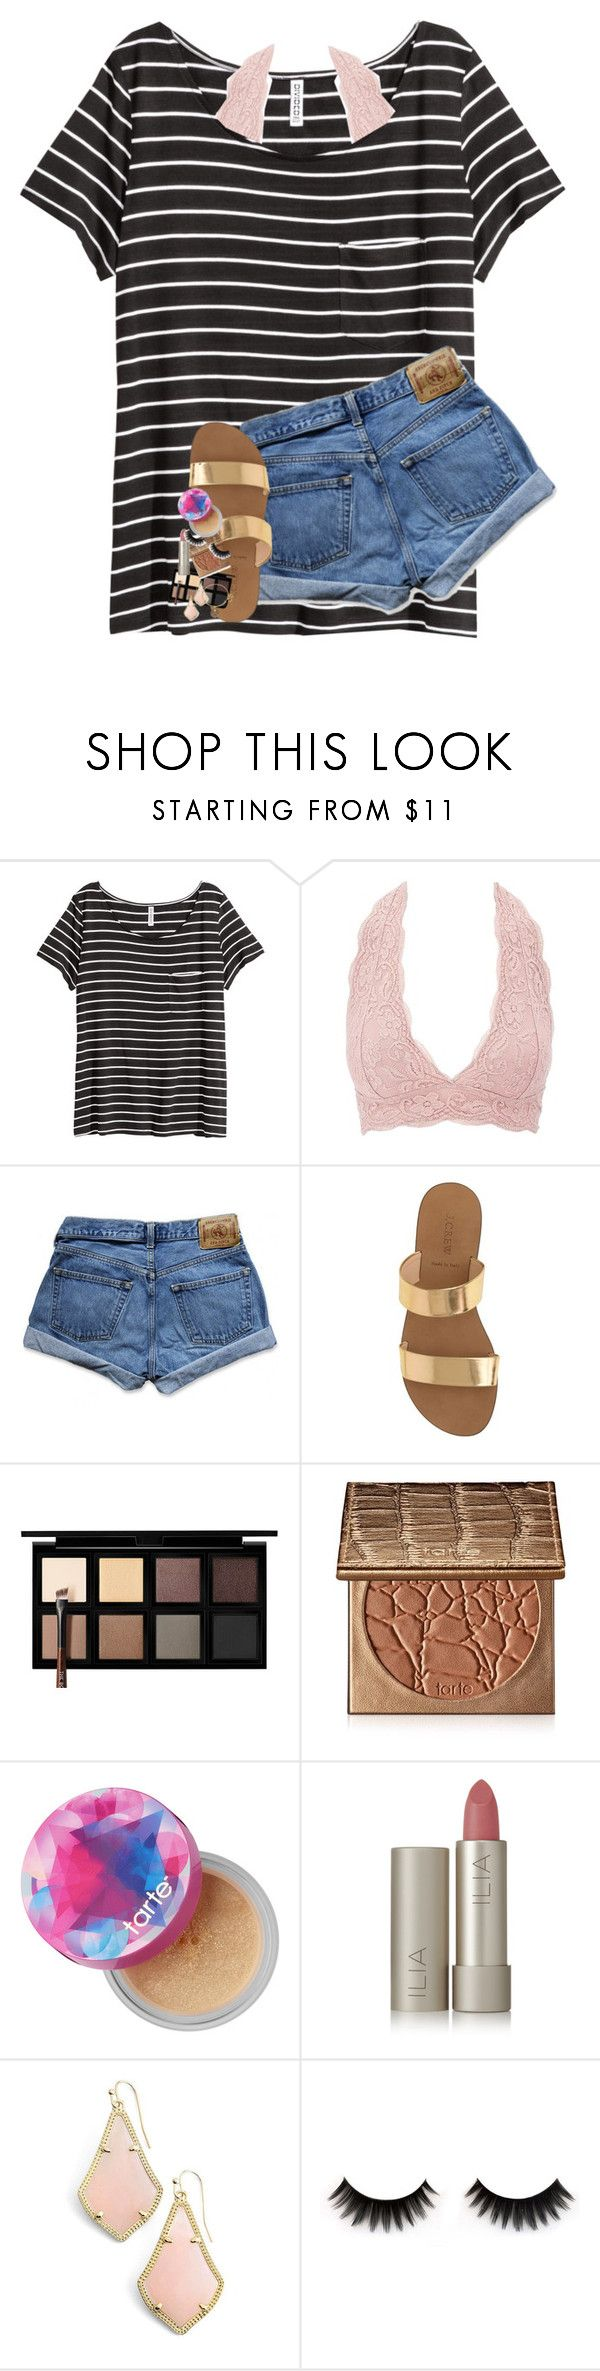 """USC IS DOWN BY 11"" by lindsaygreys ❤ liked on Polyvore featuring H&M, Charlotte Russe, Abercrombie & Fitch, J.Crew, Down to Earth, tarte, Ilia, Kendra Scott and Alex and Ani"